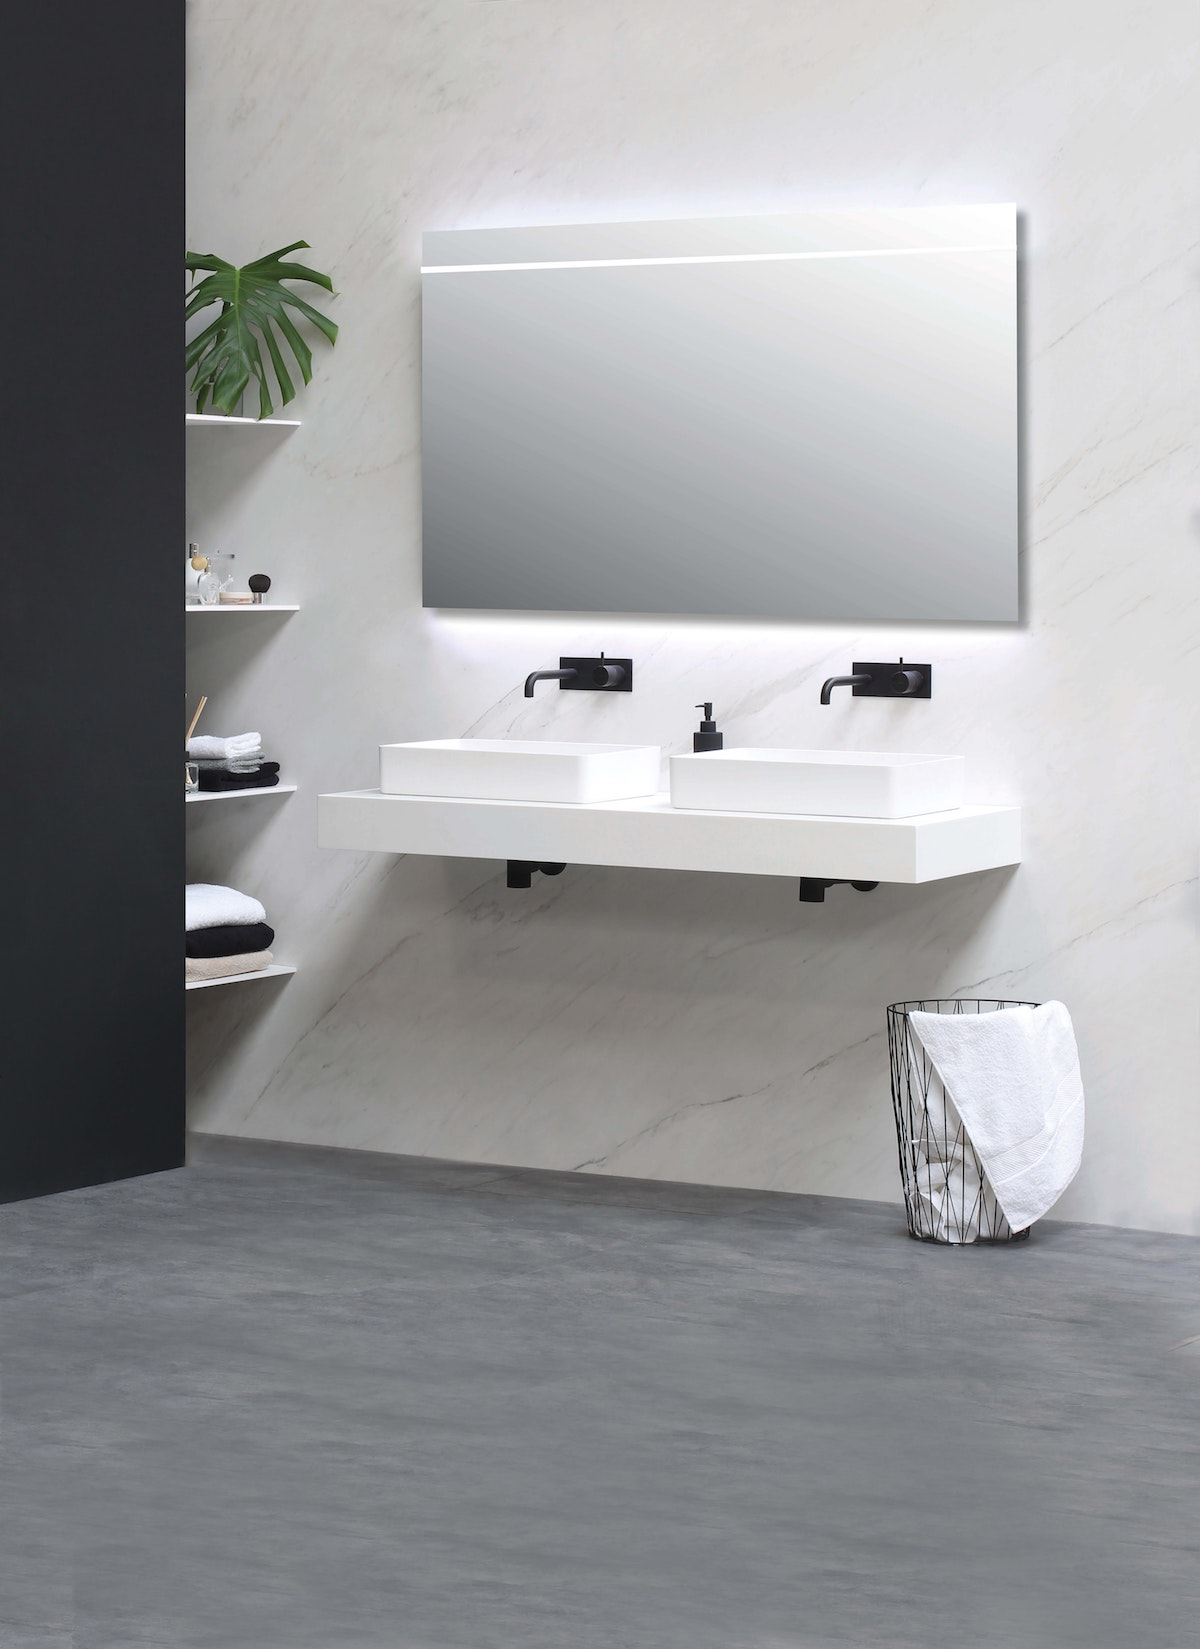 Mounted Bathroom Counter in White